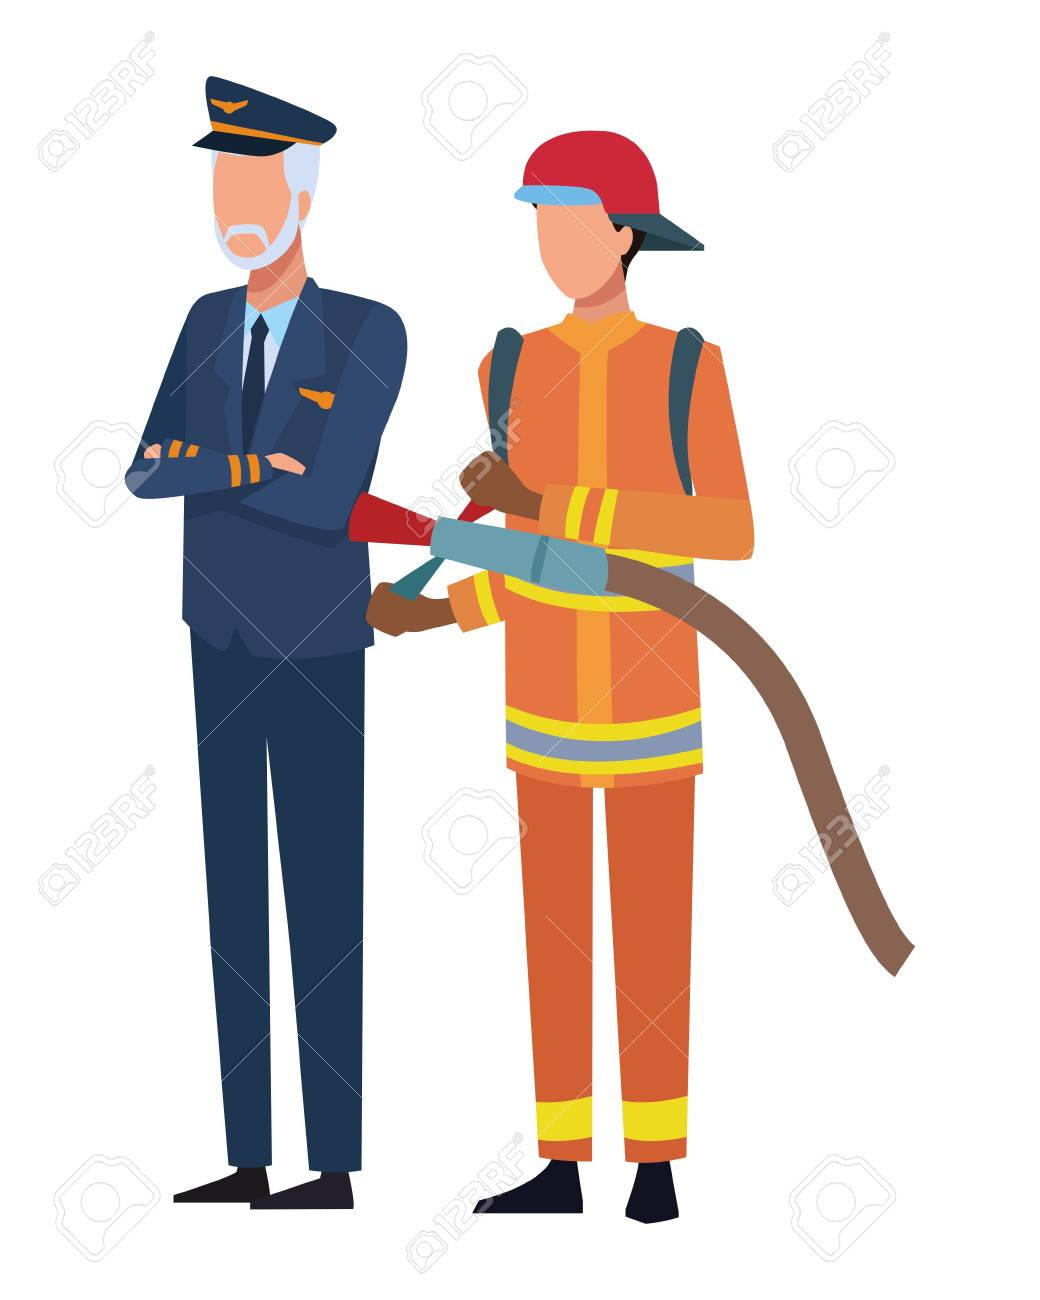 Jobs and professions pilot and firefighter avatar vector illustration